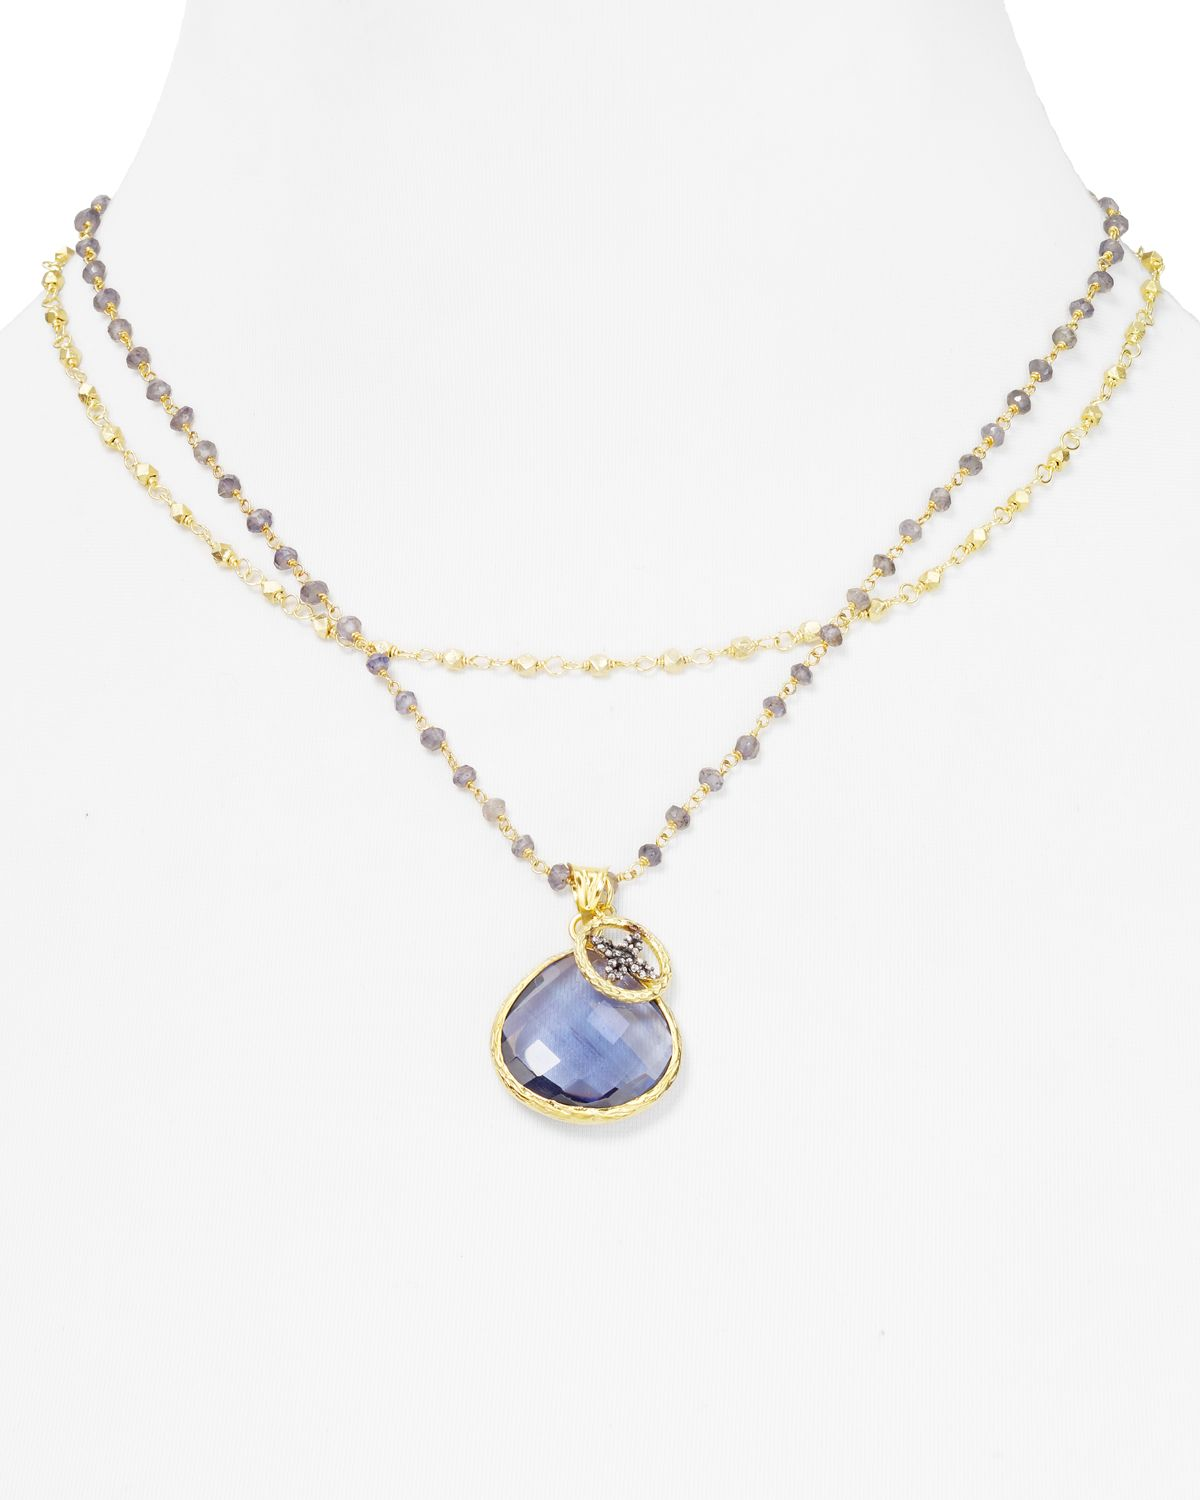 zoom necklace blue necklaces lg iolite brio jewelry to hover axd std topaz